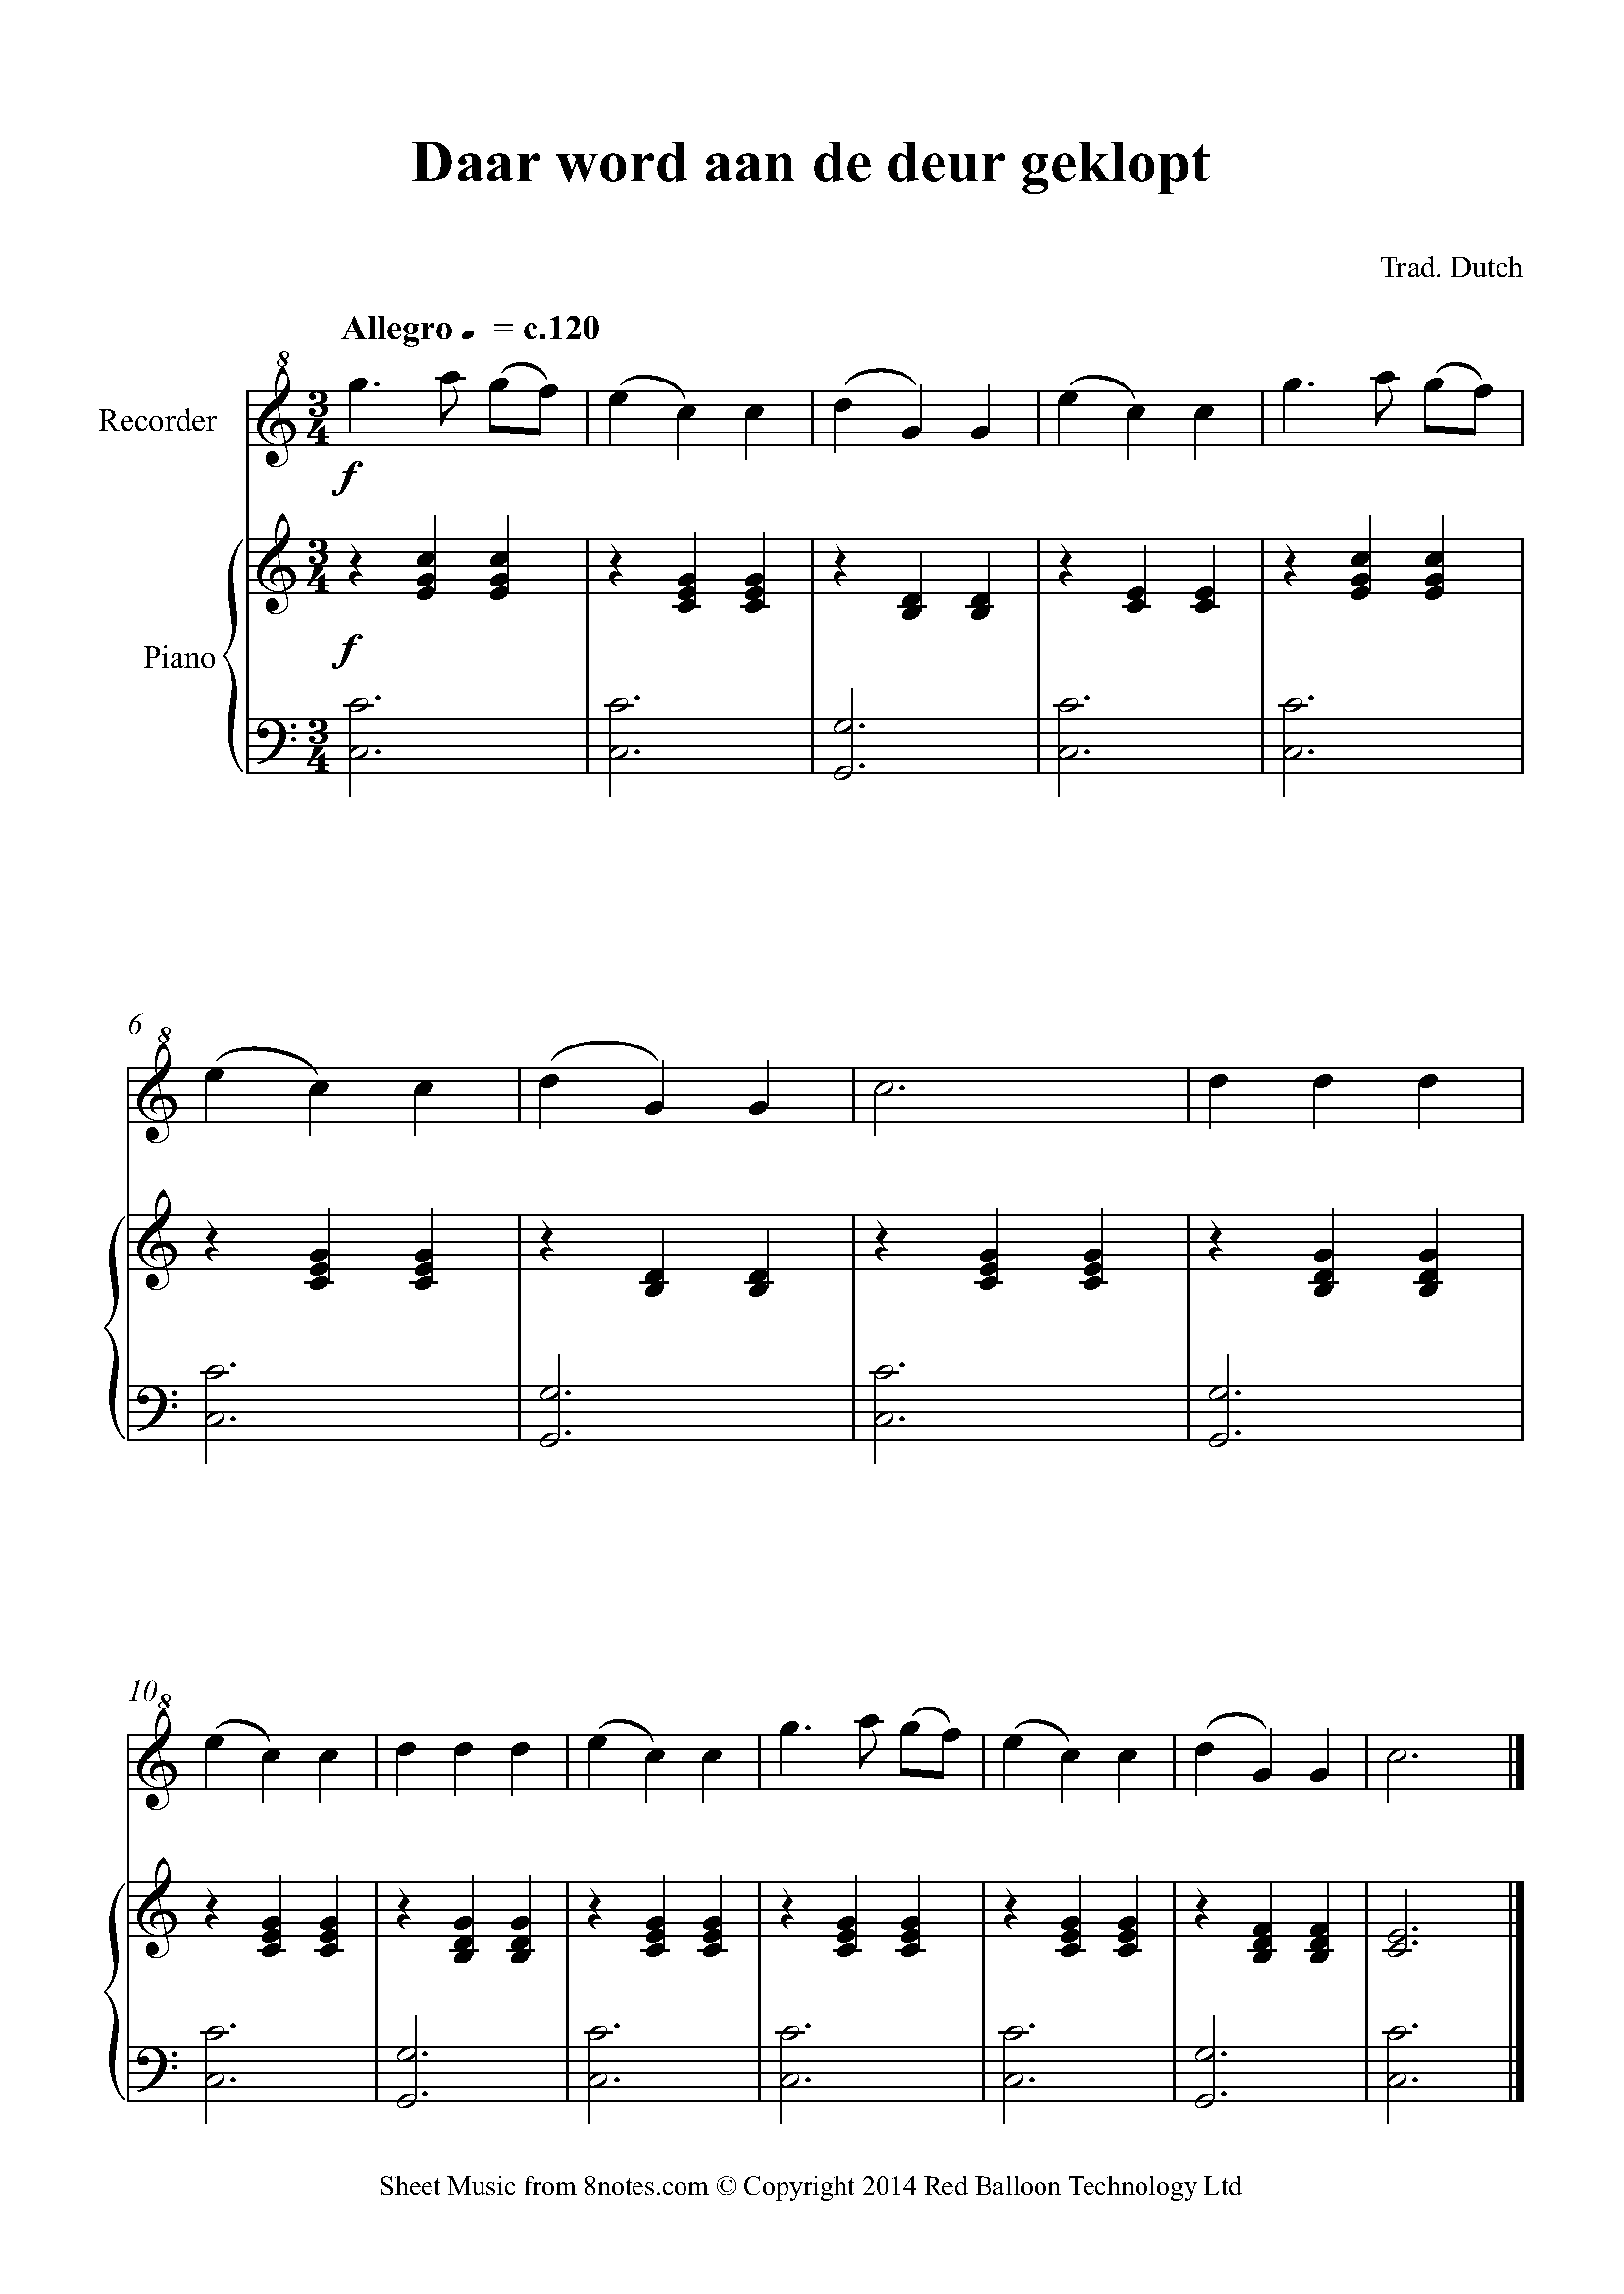 Free Recorder Sheet Music, Lessons & Resources - 8notes.com